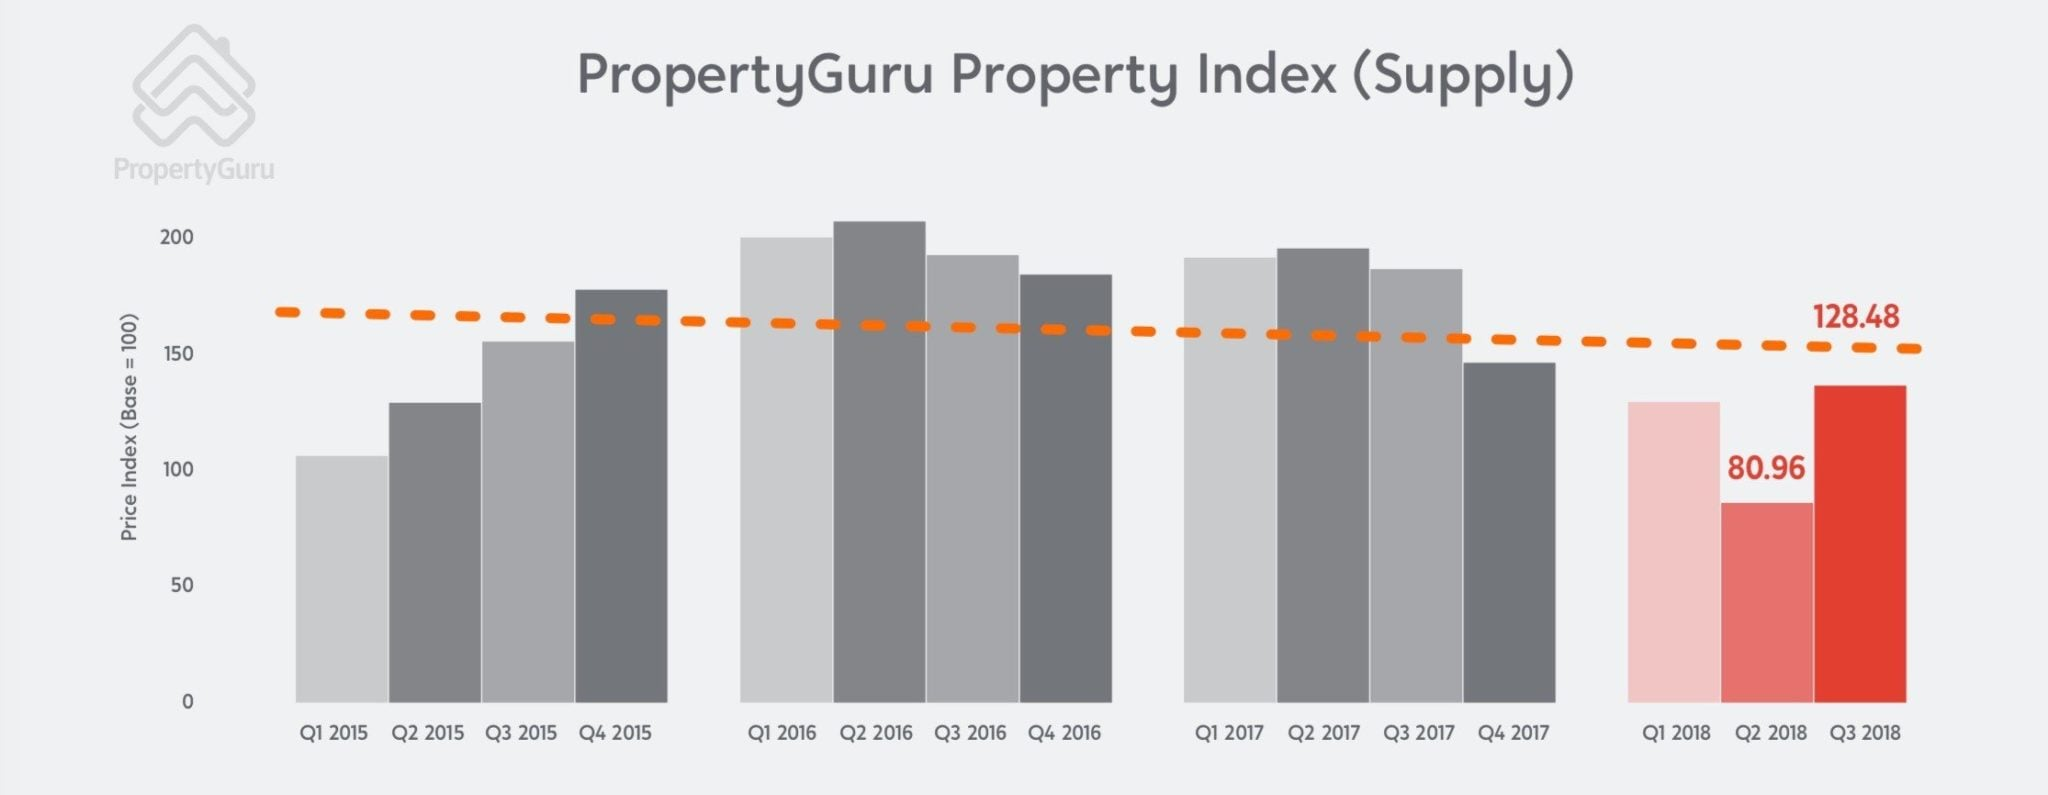 Singapore property supply 2018